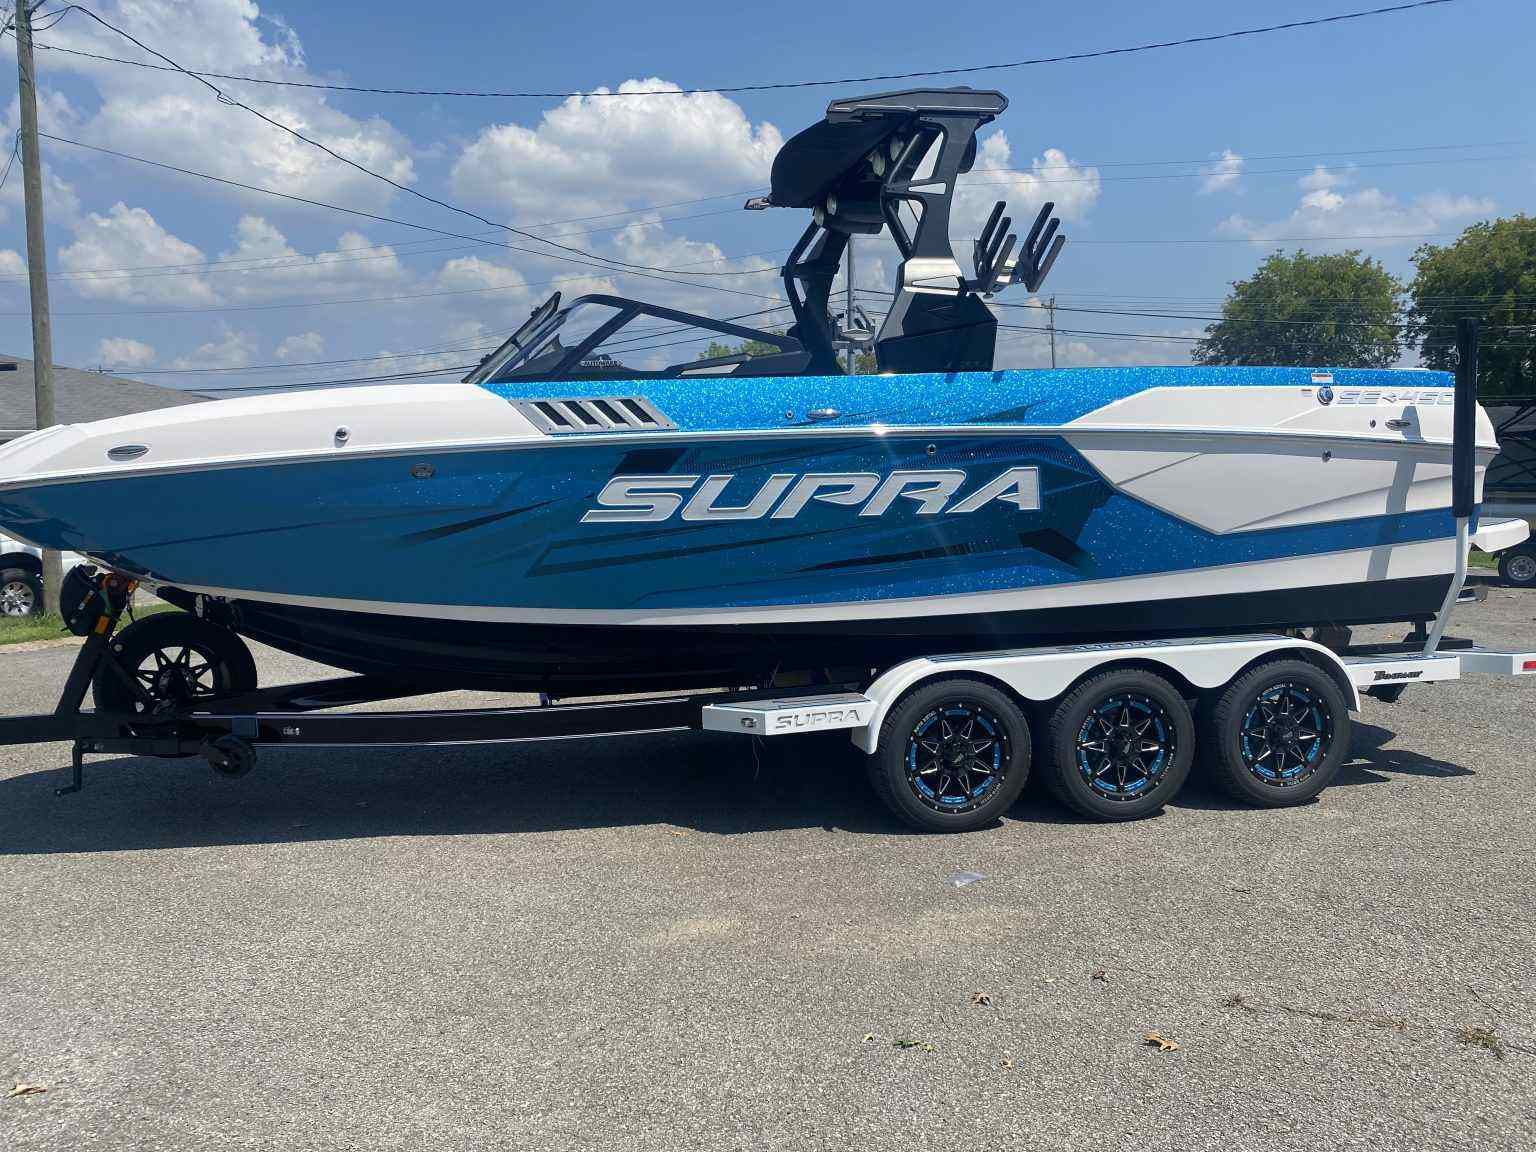 Buy Supra boats from leading boat dealers at Premier Watersports Knoxville...